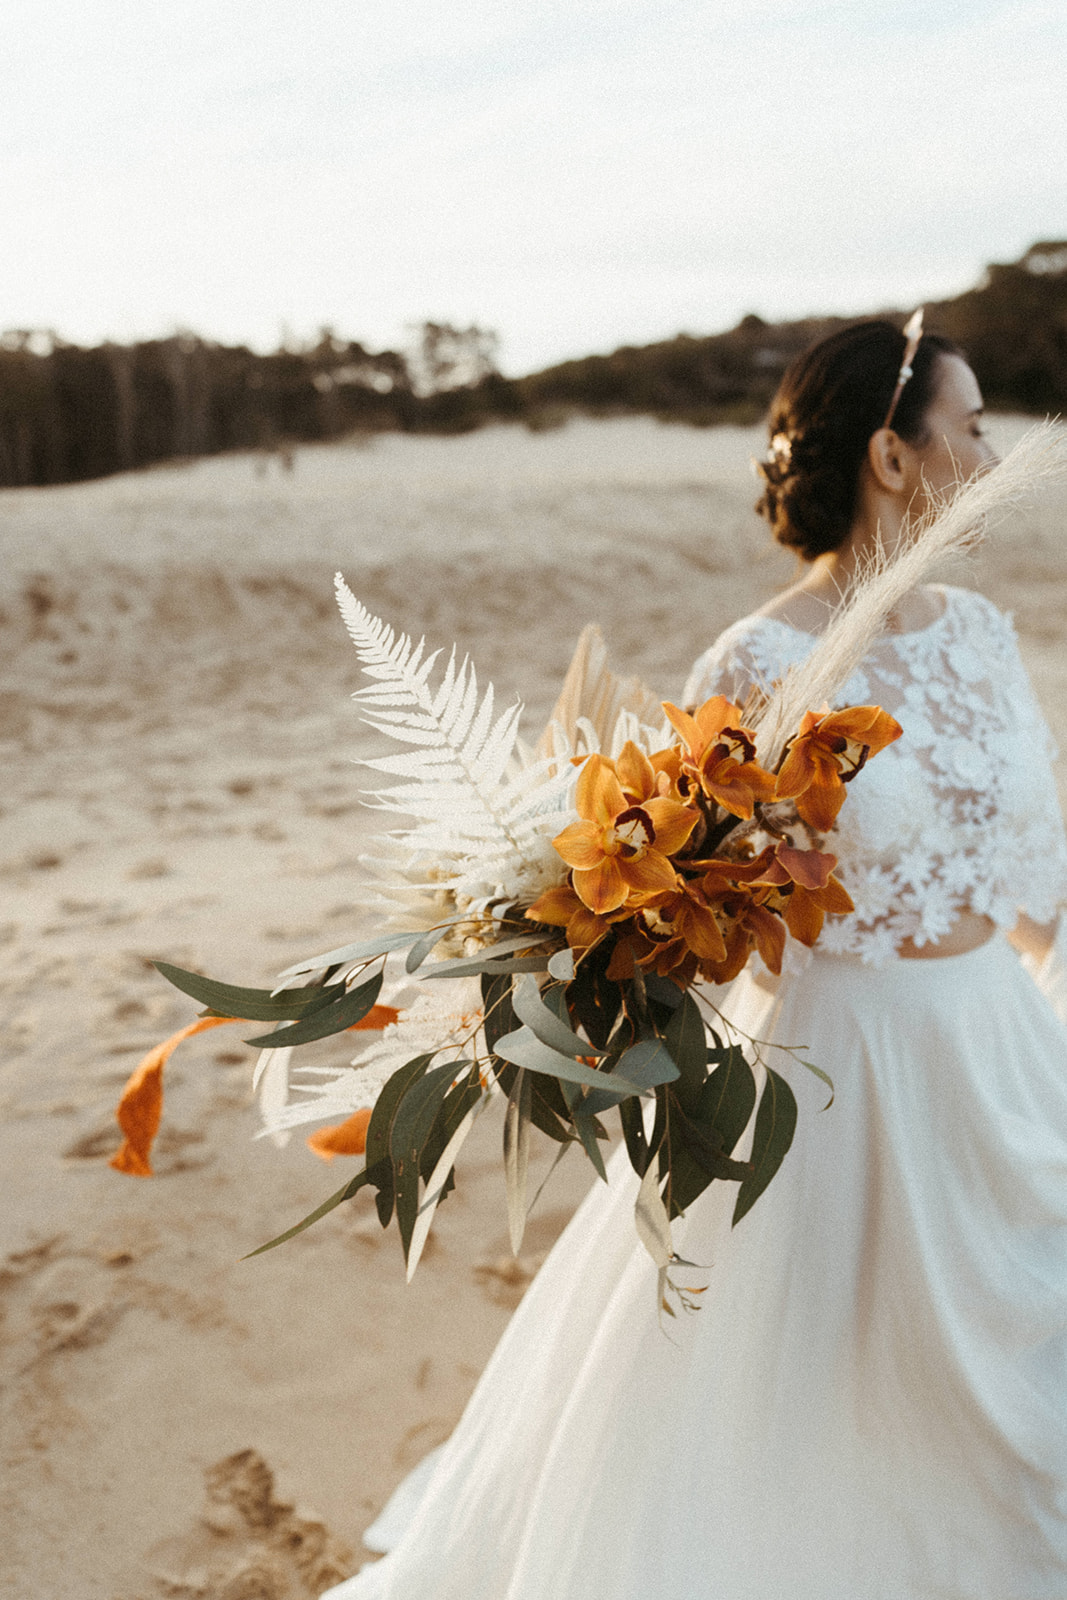 kelly jury photography weddings dried florals bridal gowns stationery style boho weddings